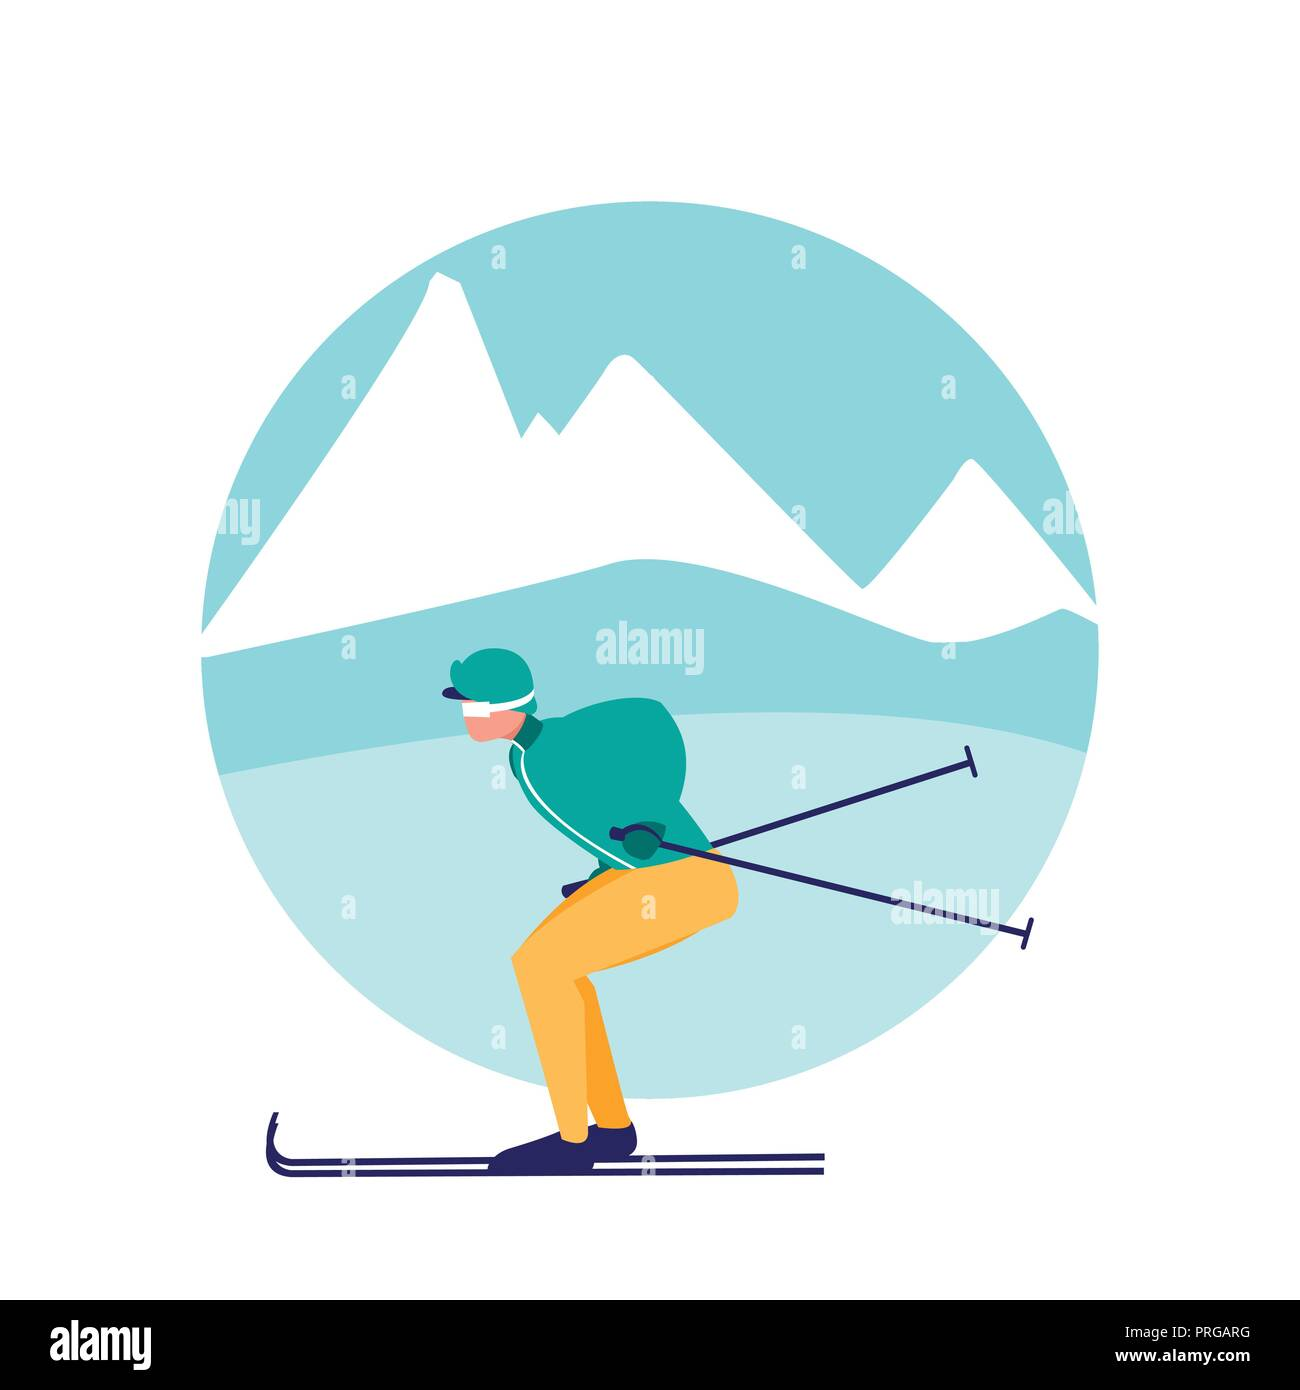 man practicing skiing on ice avatar character vector illustration design - Stock Image